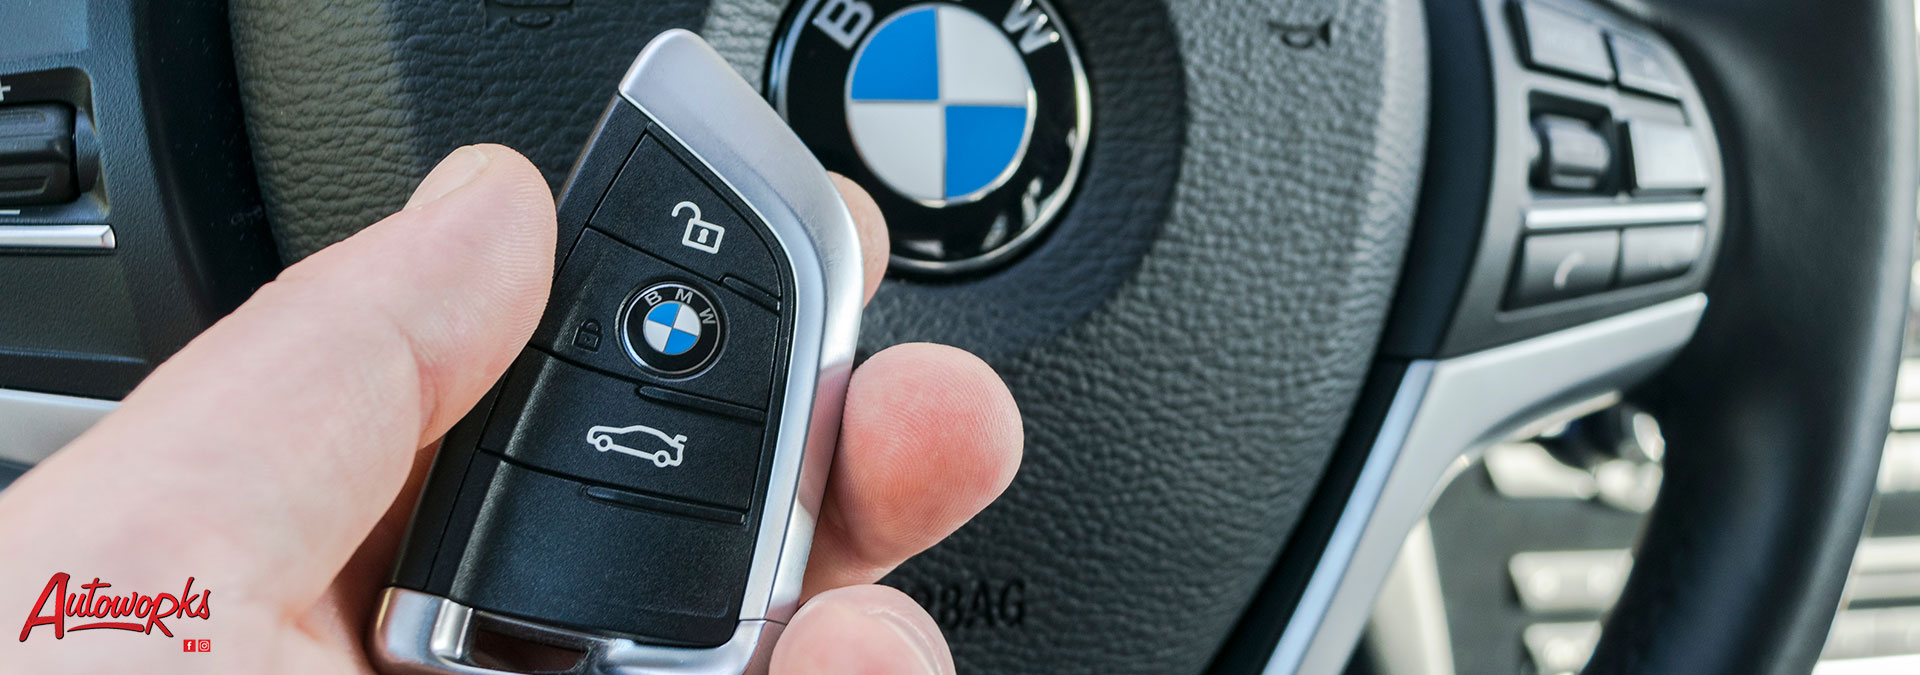 autoworks-blog-latest-news-bmw-keys-swindon.jpg